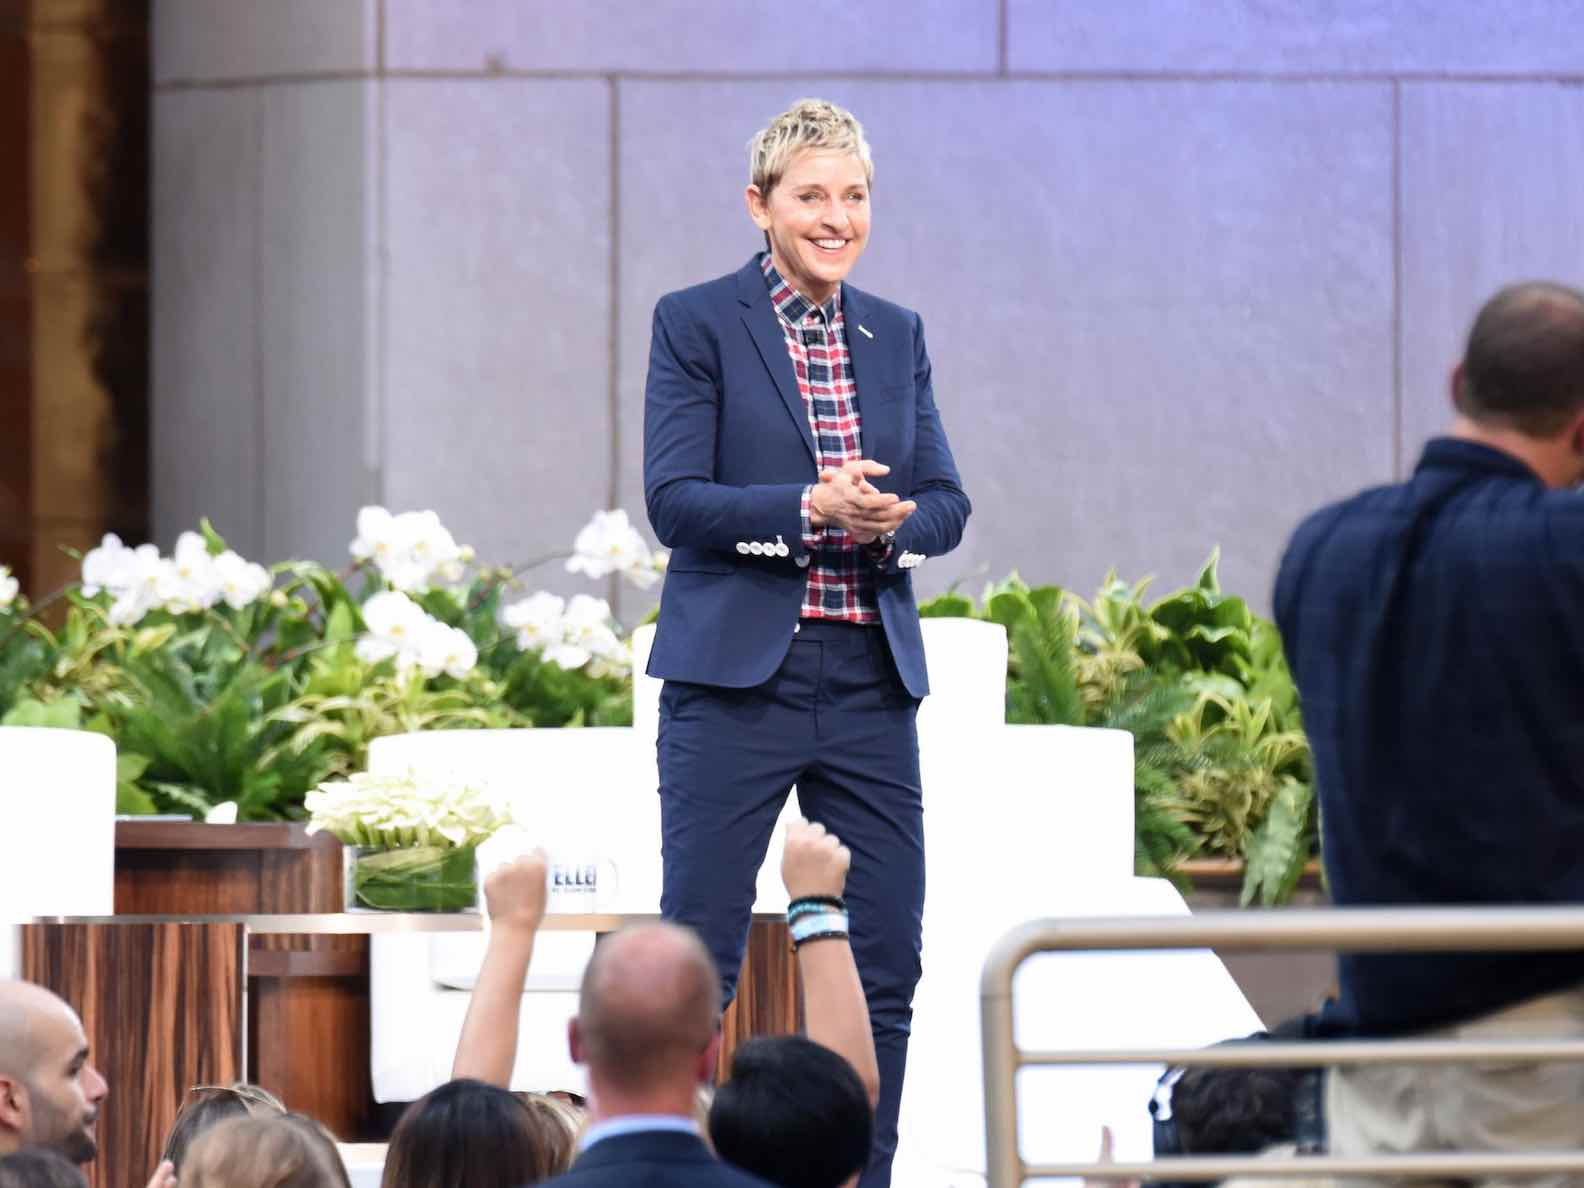 Ellen show staff to get new perks after 'toxic' workplace investigation